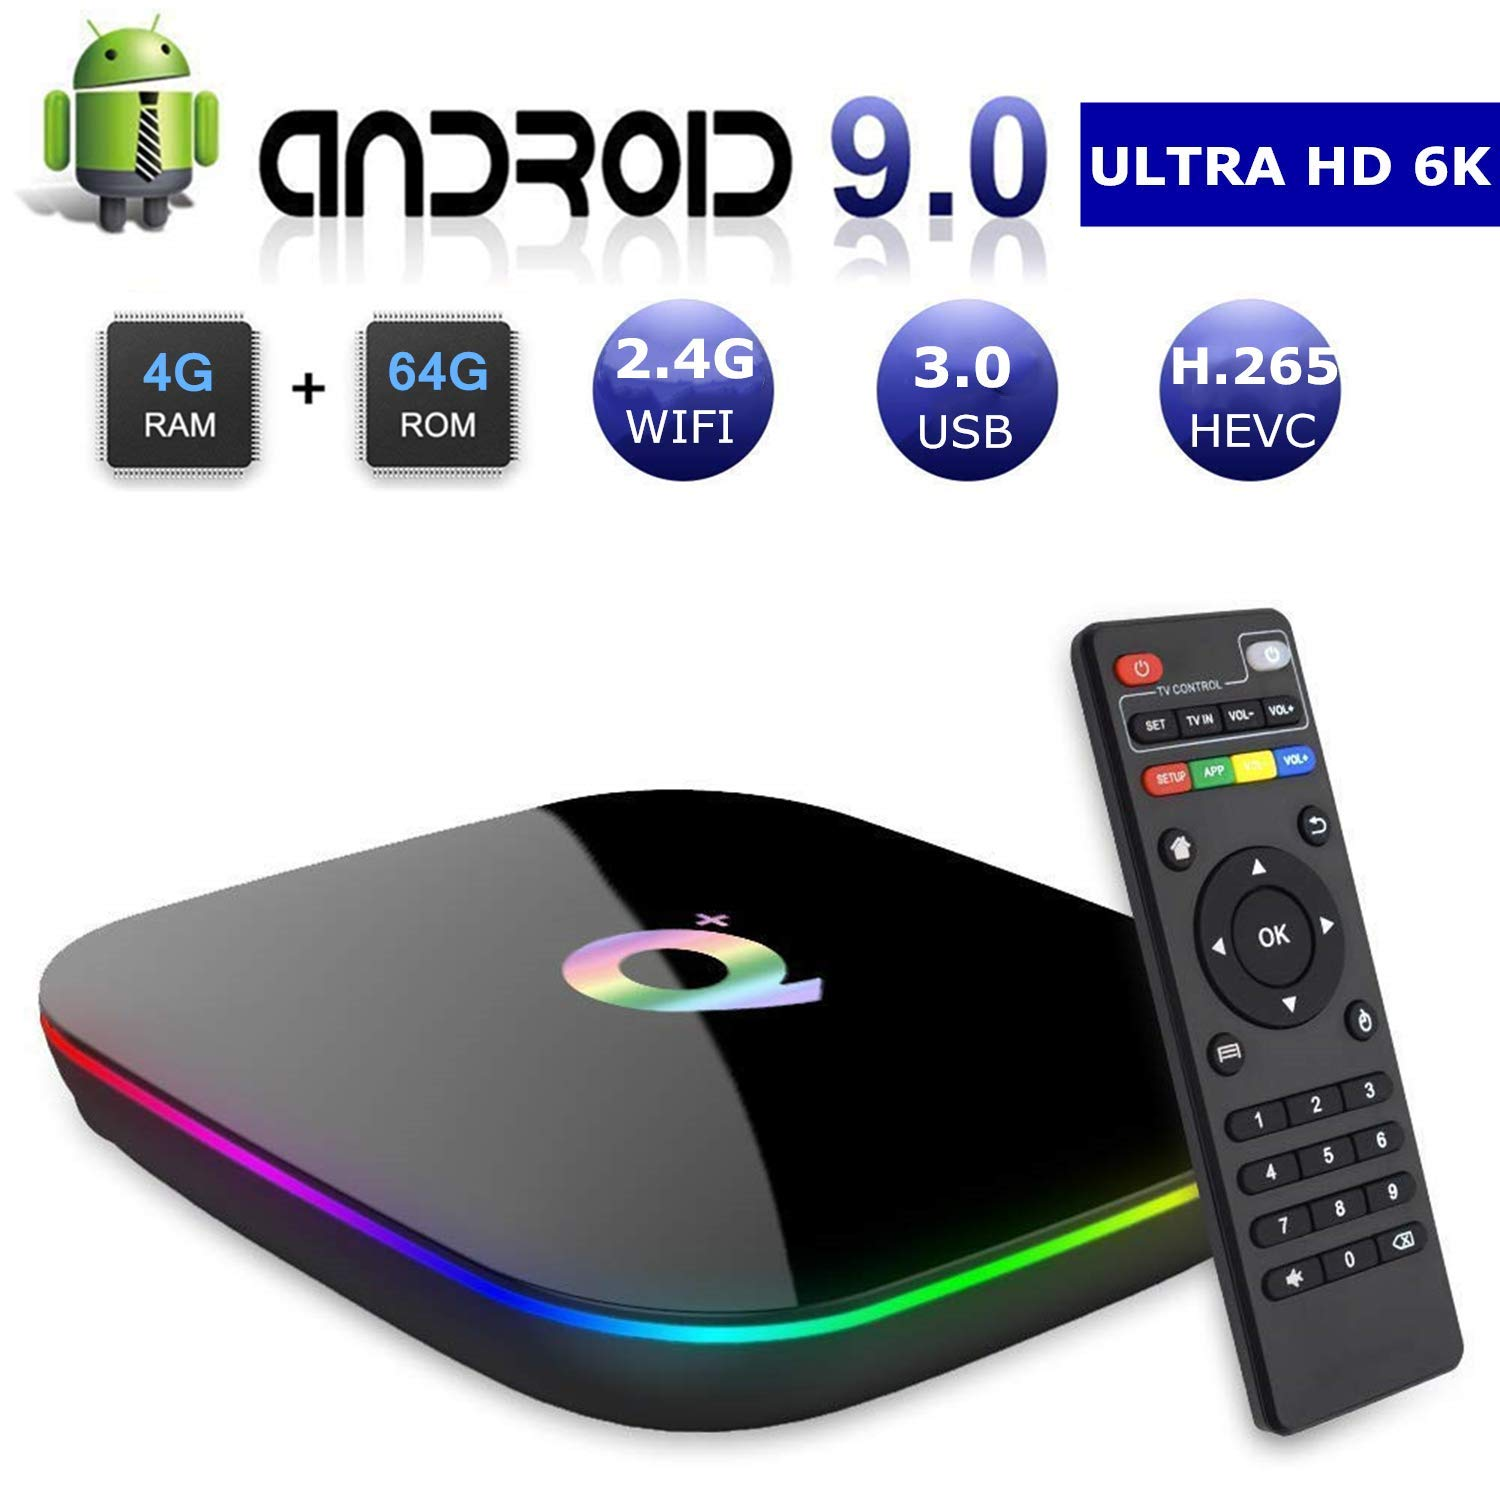 Android 9.0 Smart TV Box, 4GB RAM 64GB ROM Linkplus Q Plus H6 Quad-core cortex-A53 Frequency 2G Mali-T720MP2 WiFi 2.4GHz Support 6K H.265 HDMI 2.0 Output Ethernet RJ-45 with USB 3.0 by Link Plus